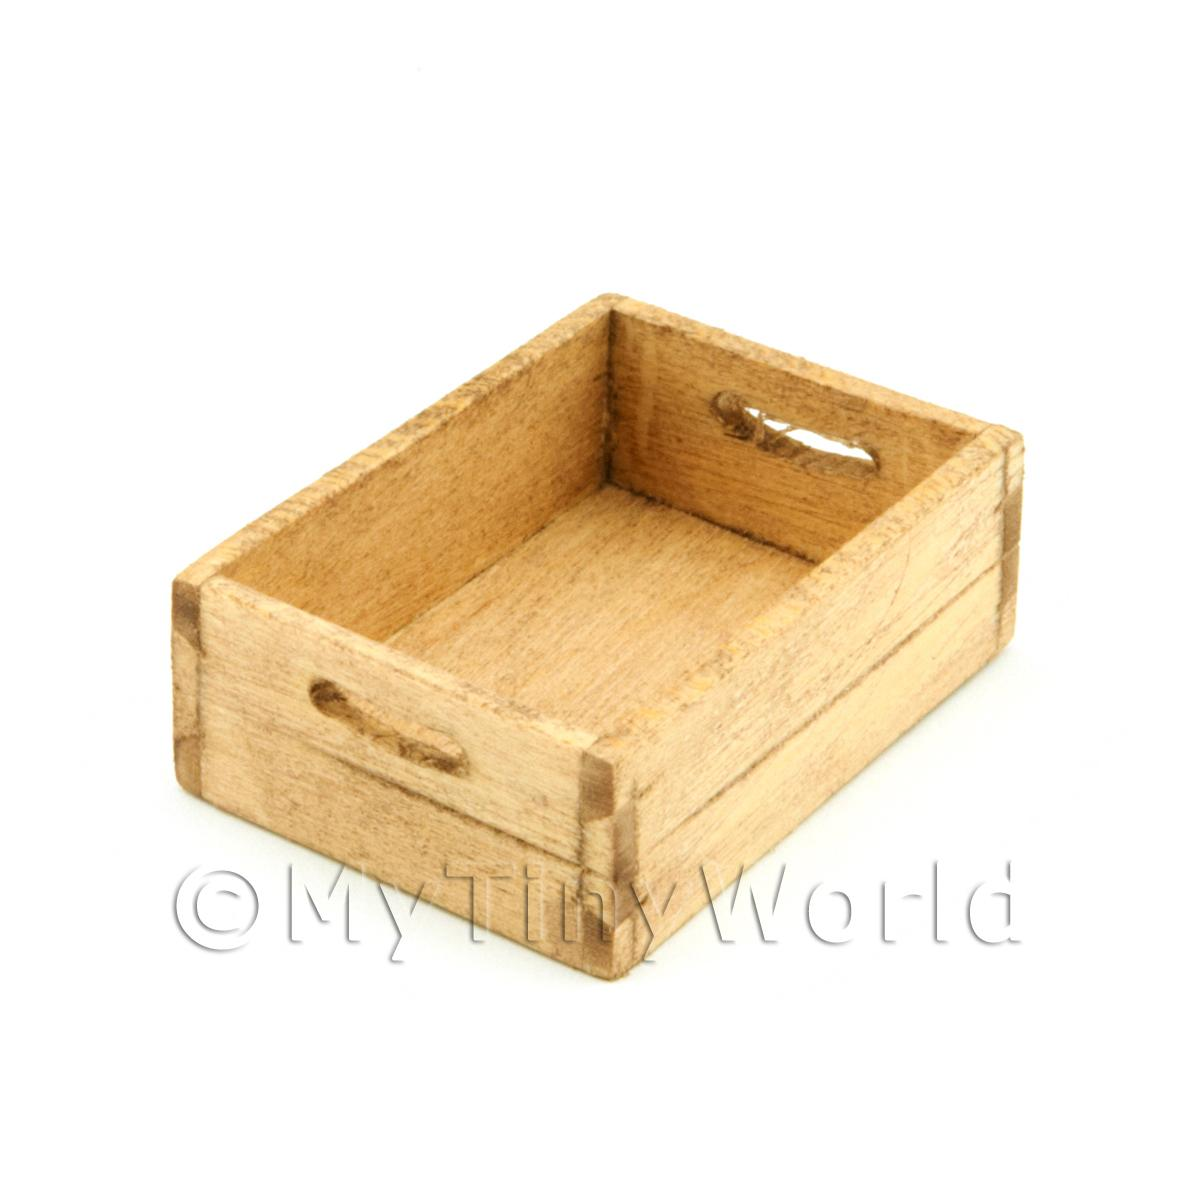 Wood bottle crates dolls house miniature mytinyworld for Where to buy old crates